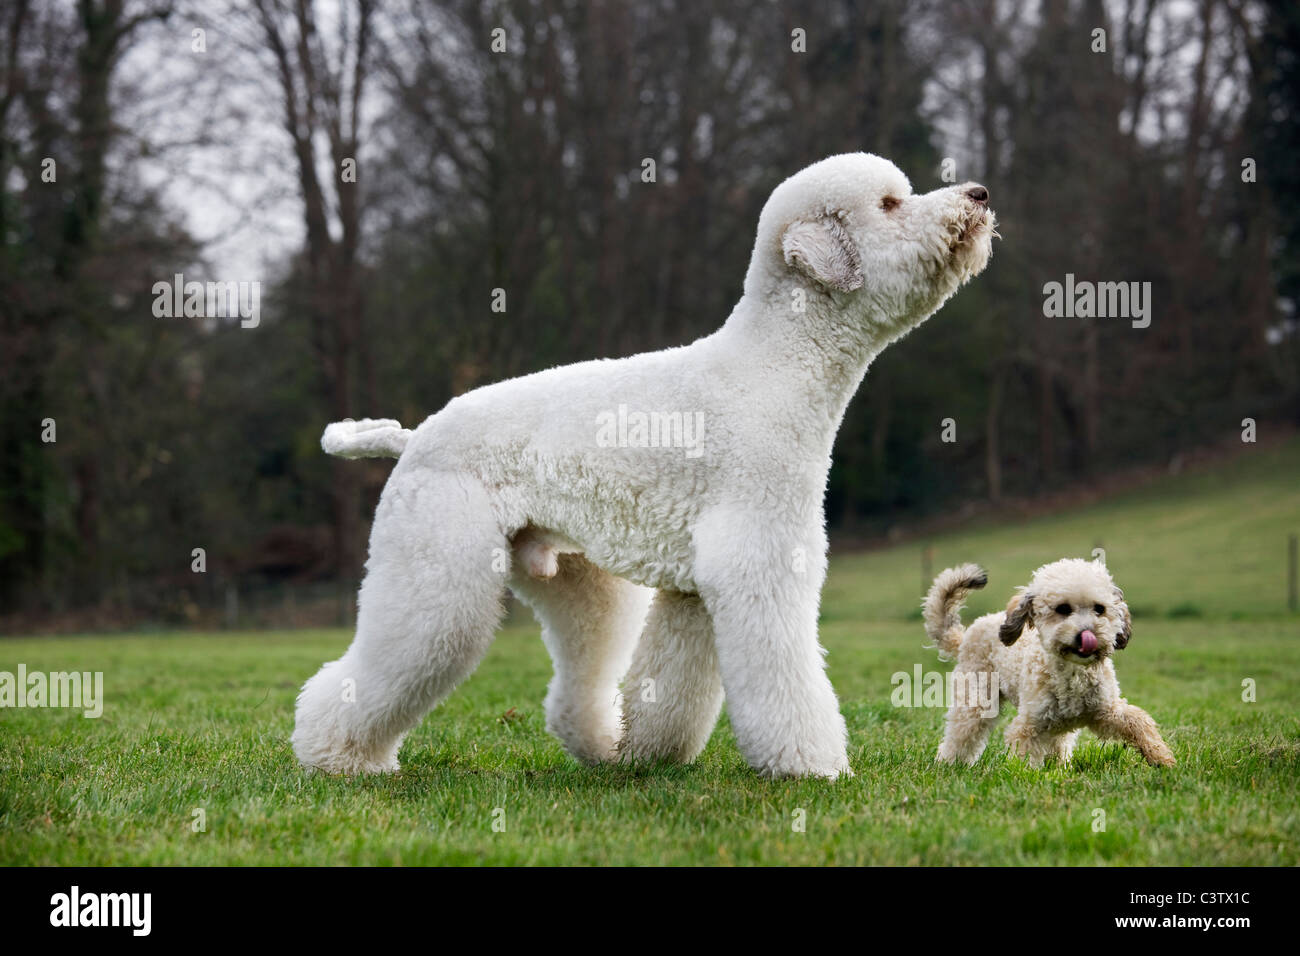 Standard poodle (Canis lupus familiaris) with pup in garden - Stock Image